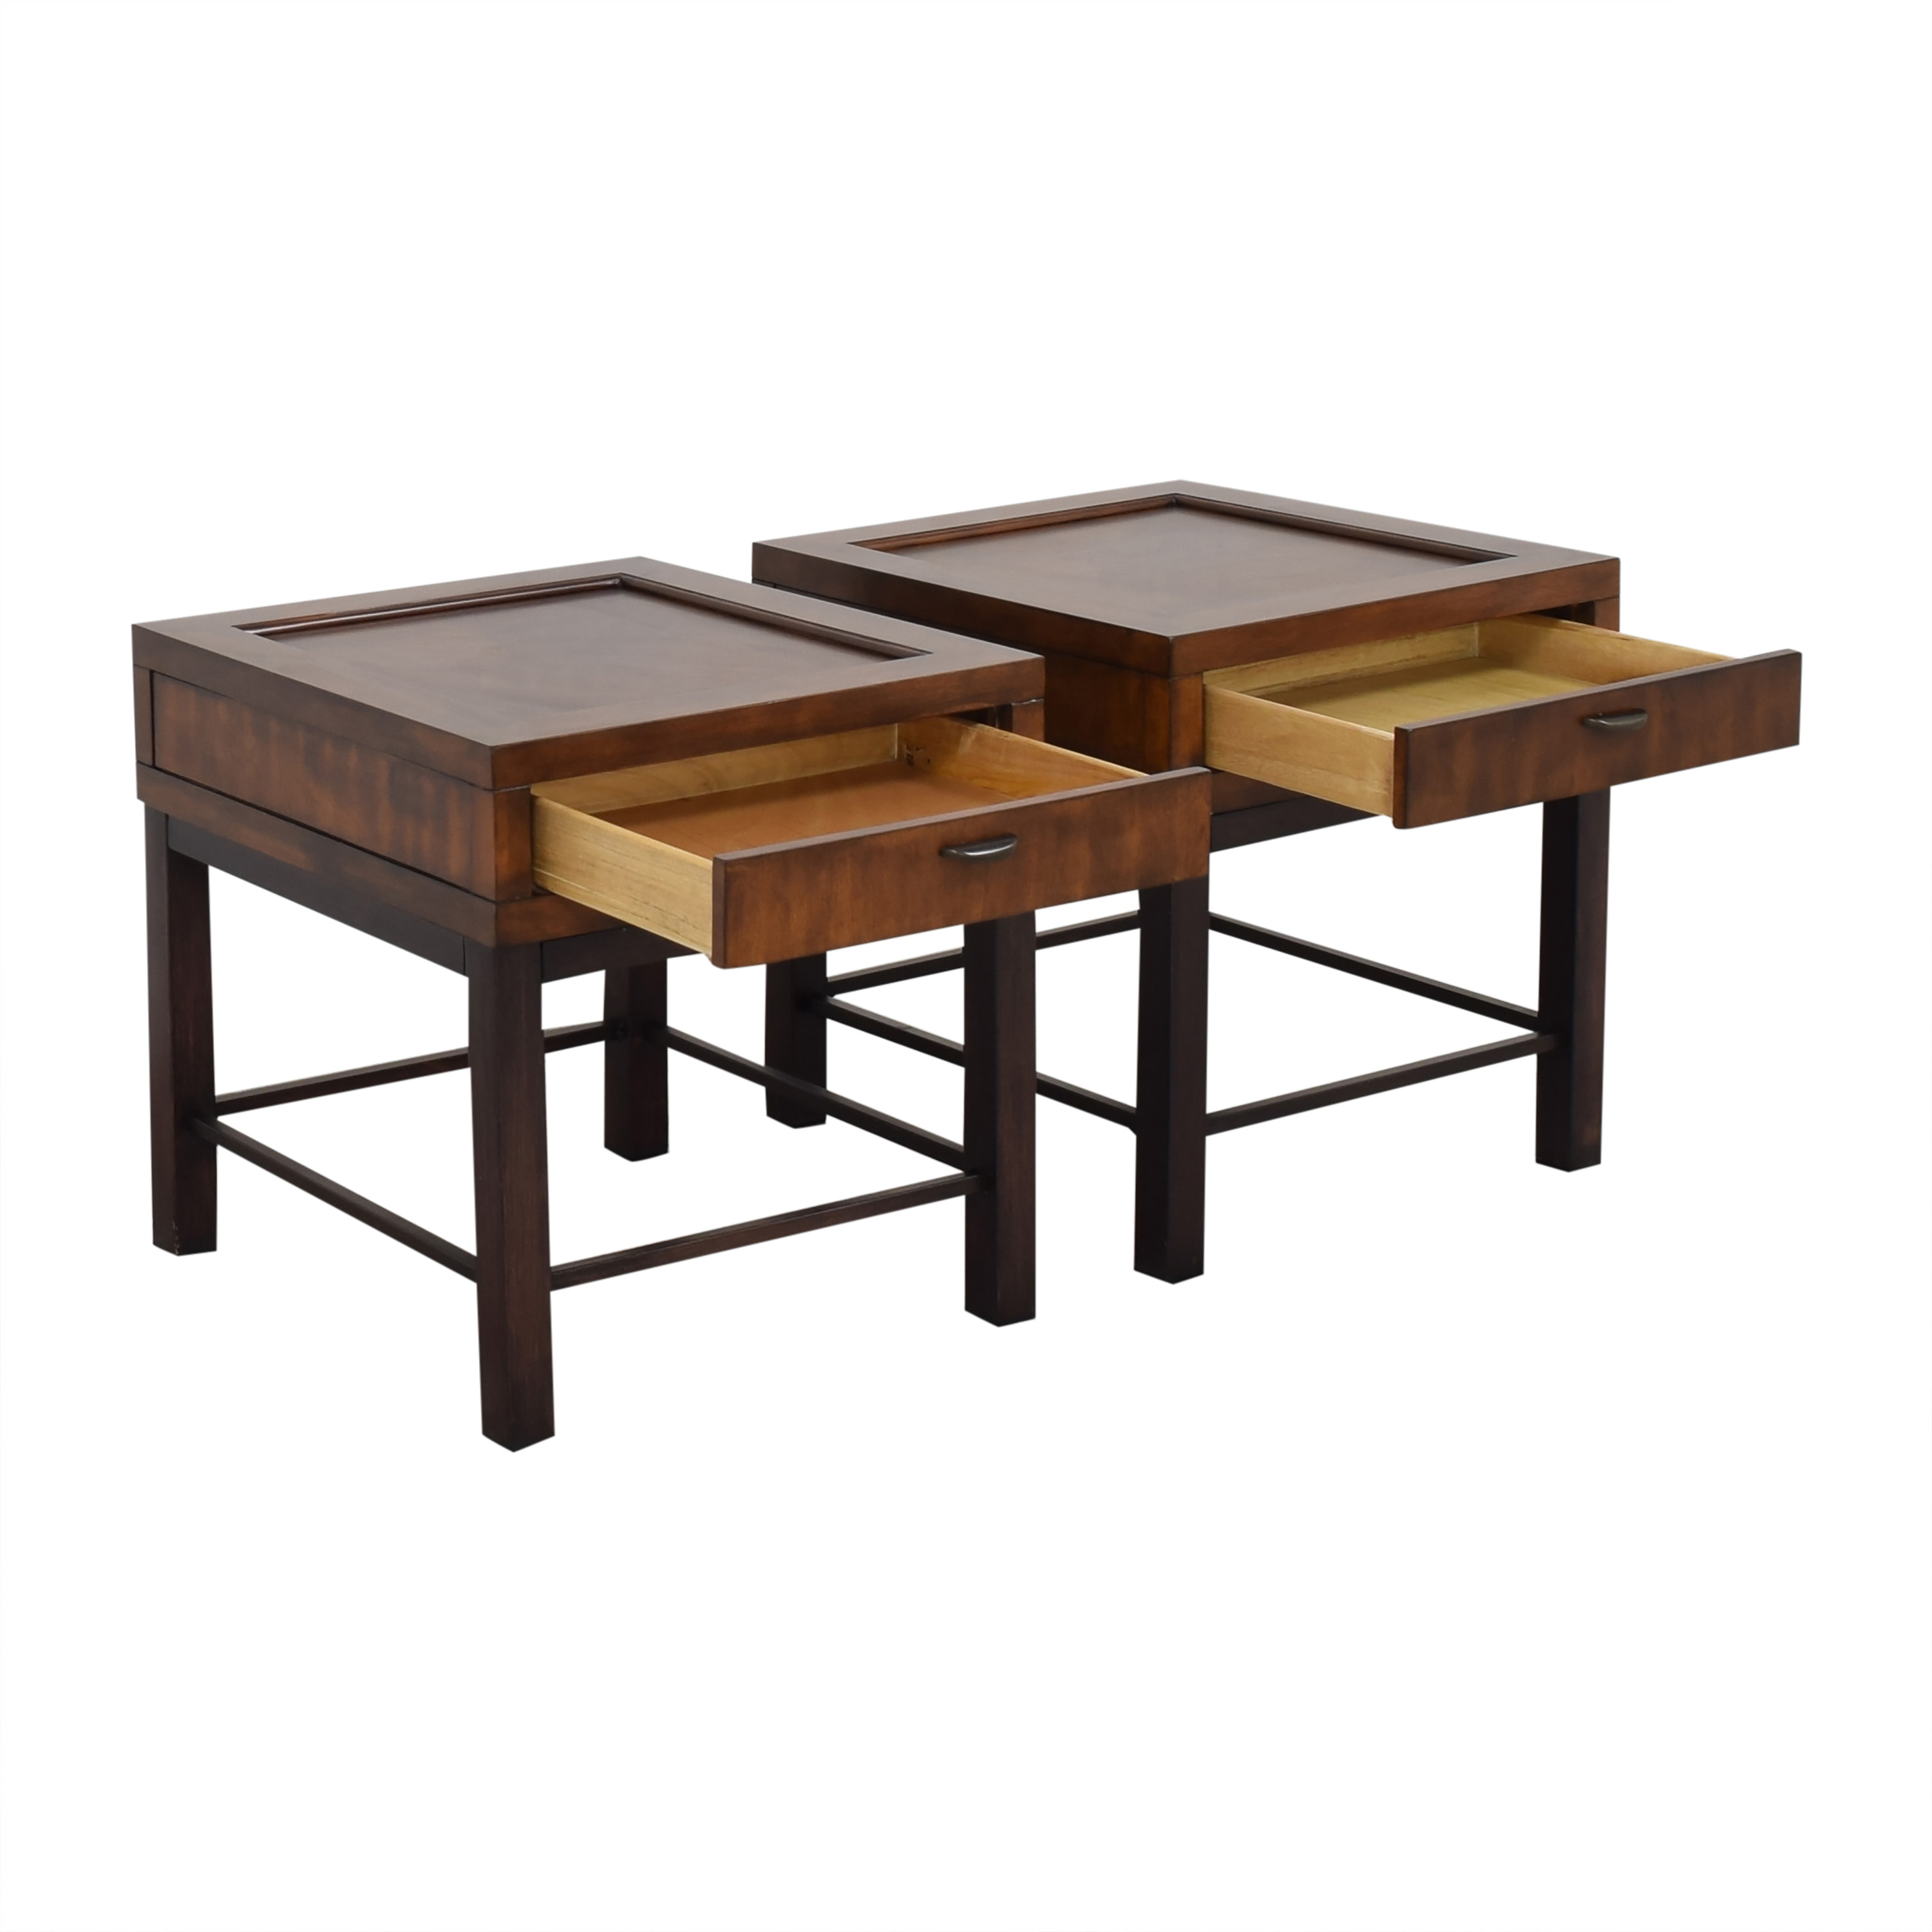 buy Raymour & Flanigan Single Drawer End Tables Raymour & Flanigan